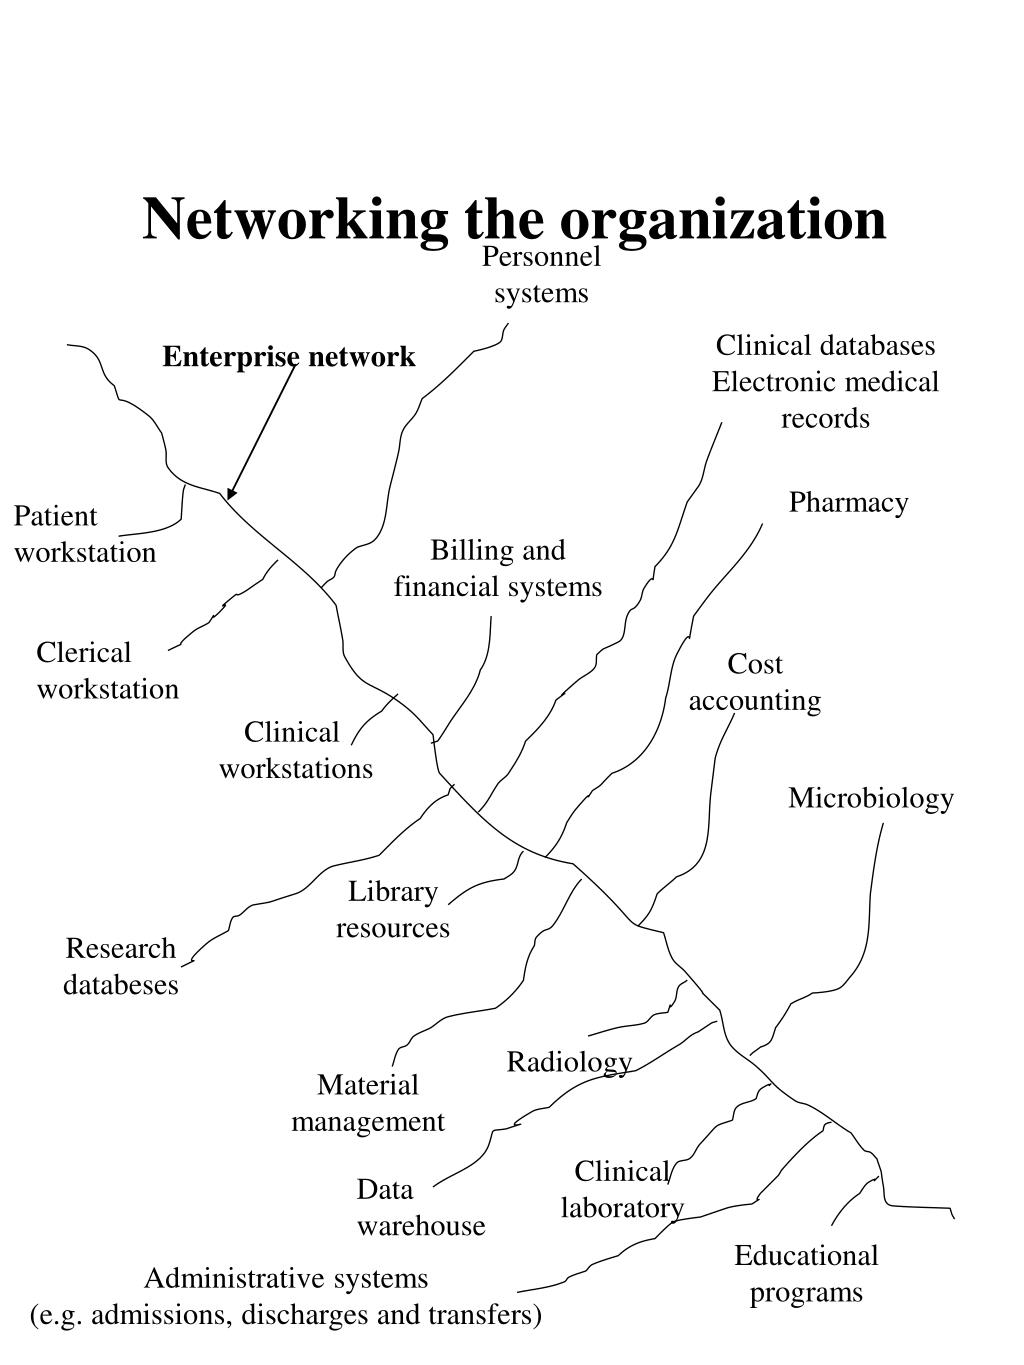 Networking the organization